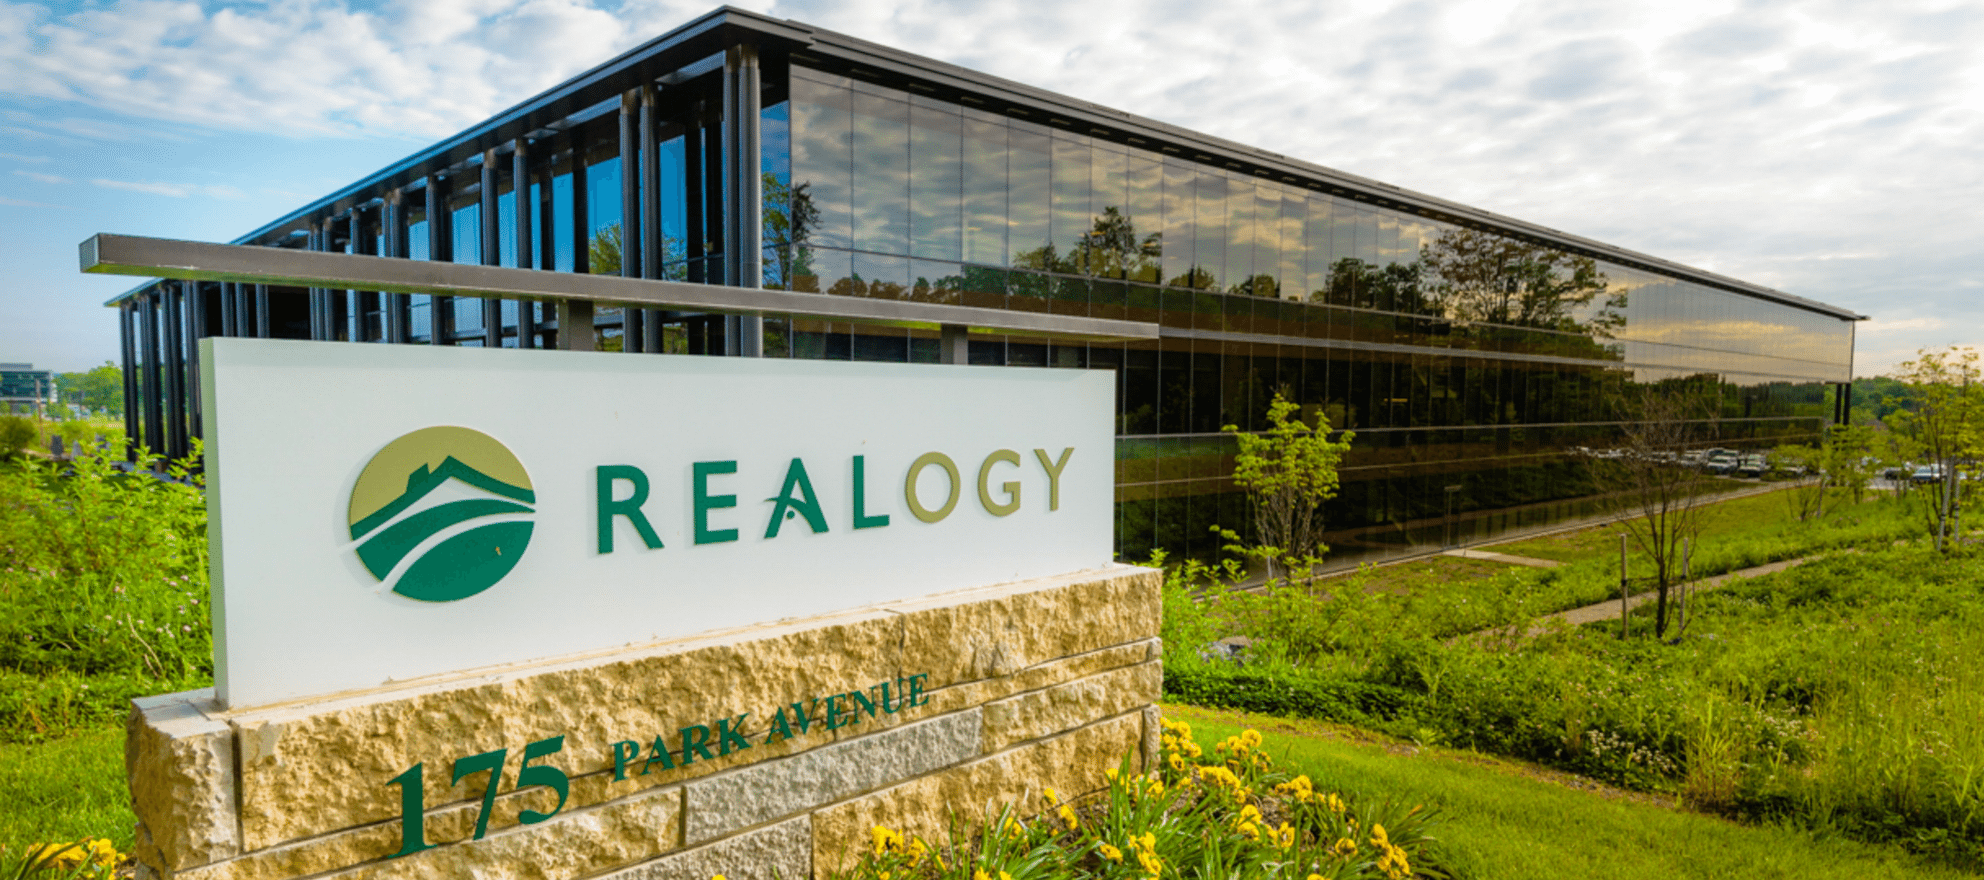 Realogy made $6.1B in revenue in 2017, up 5%